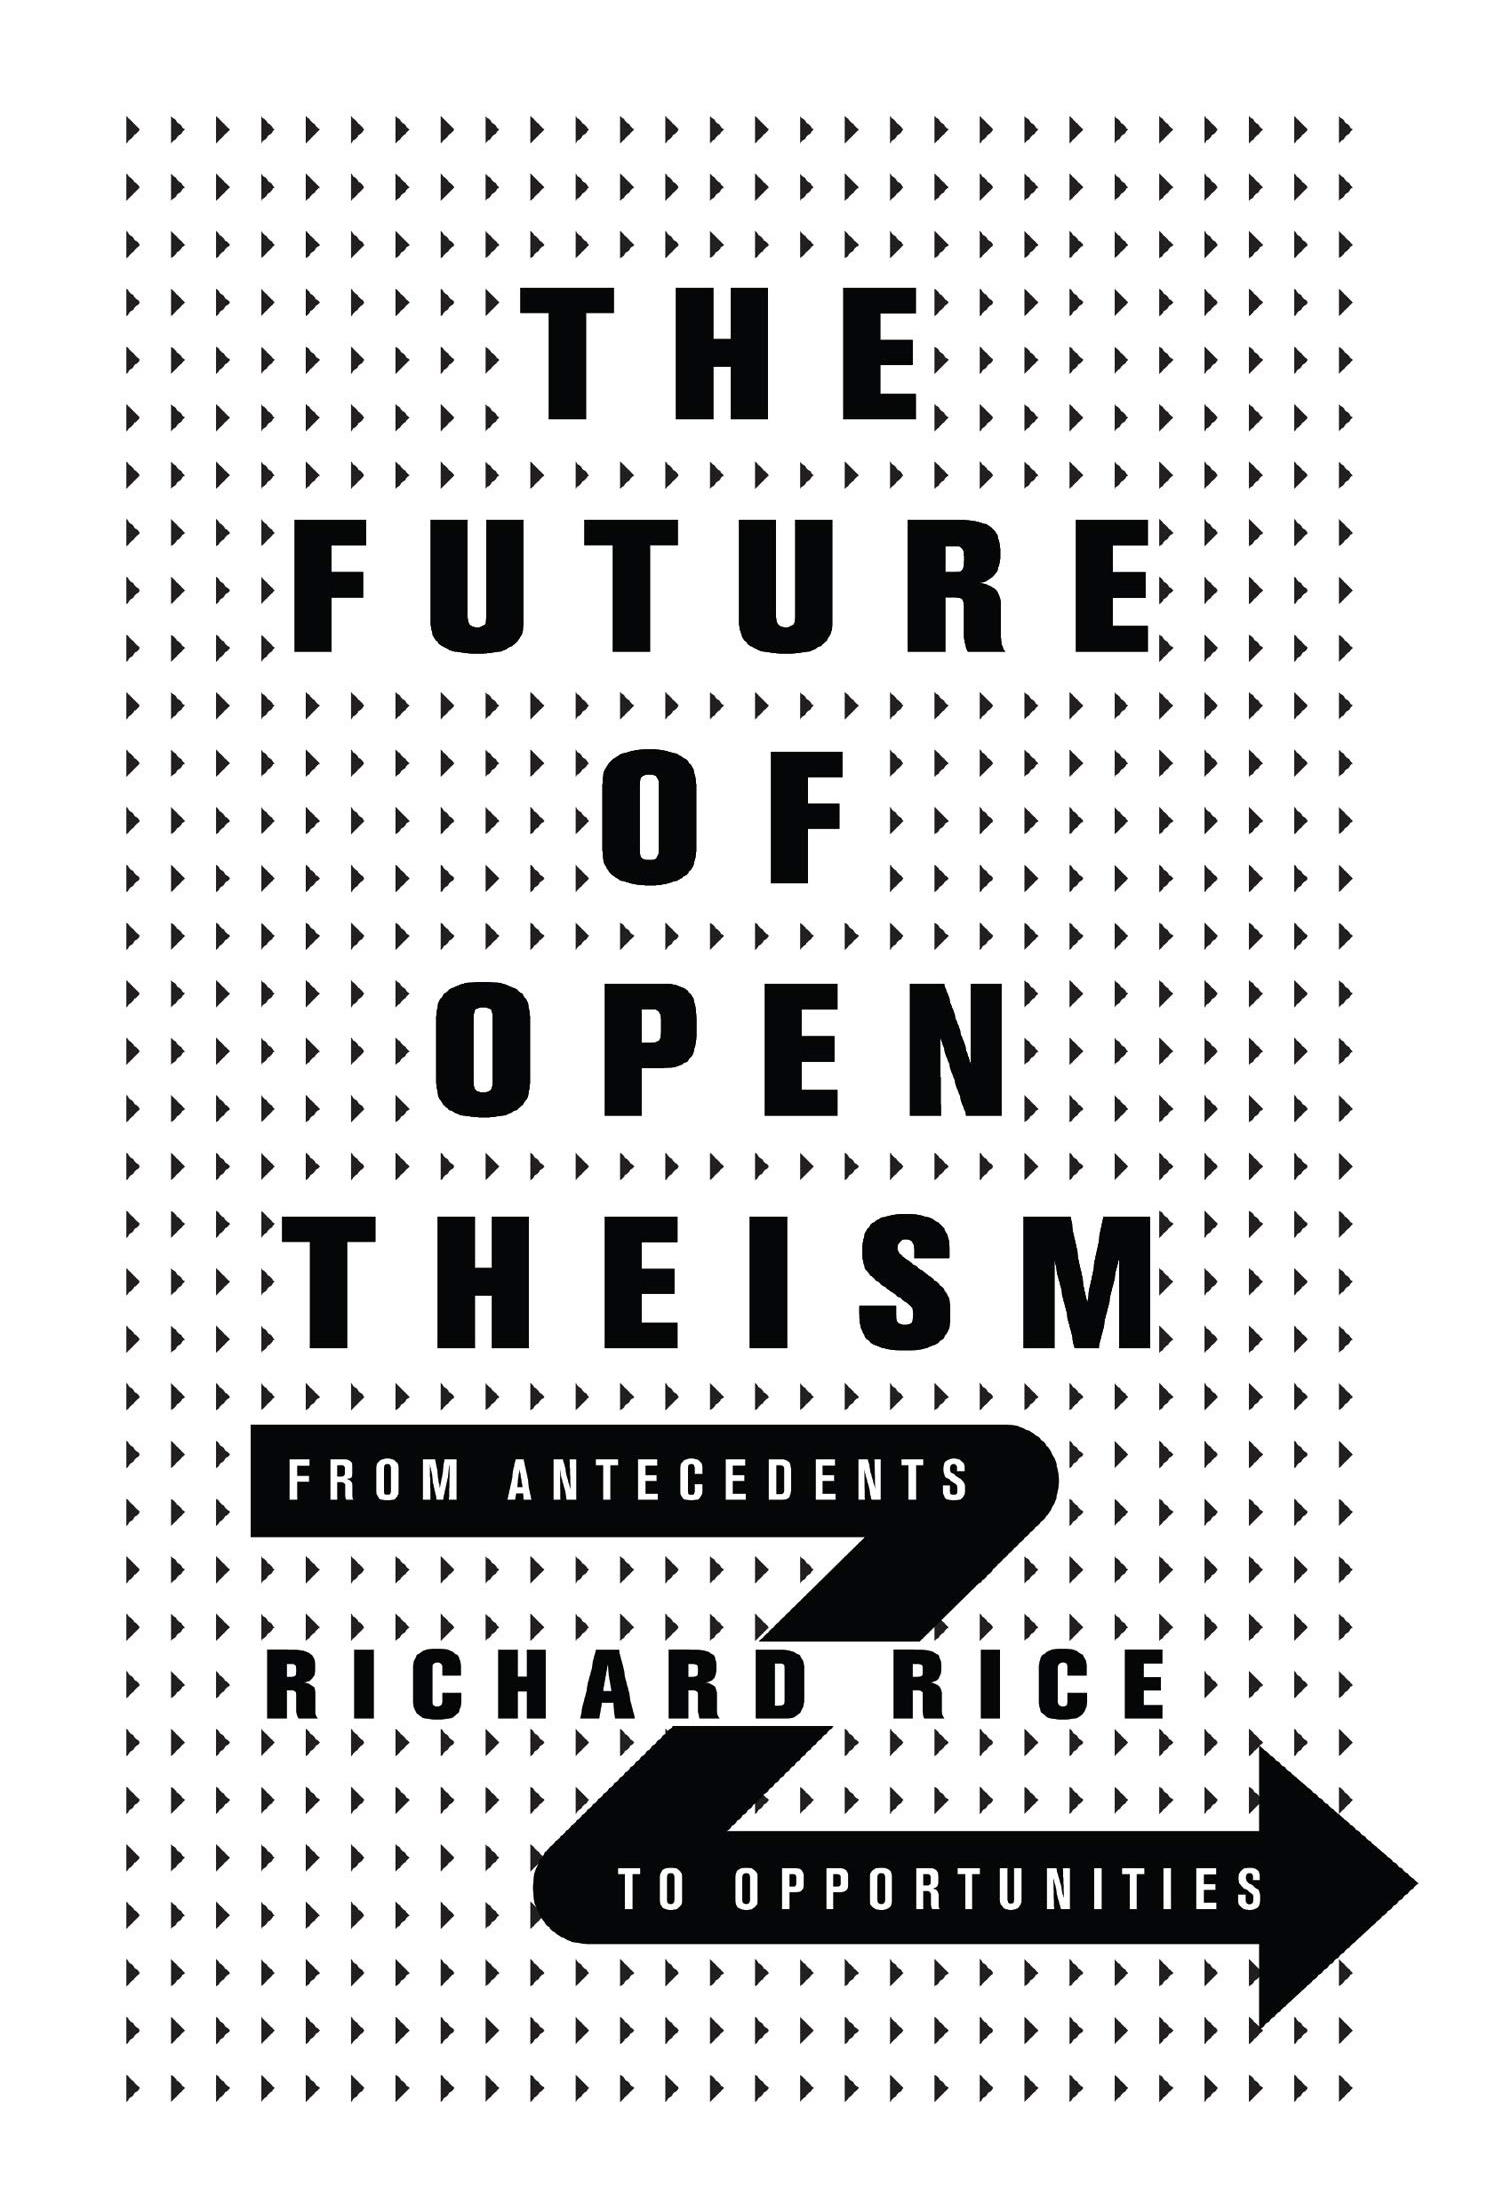 open-theism-the-future-of-by-richard-rice-2020.jpg